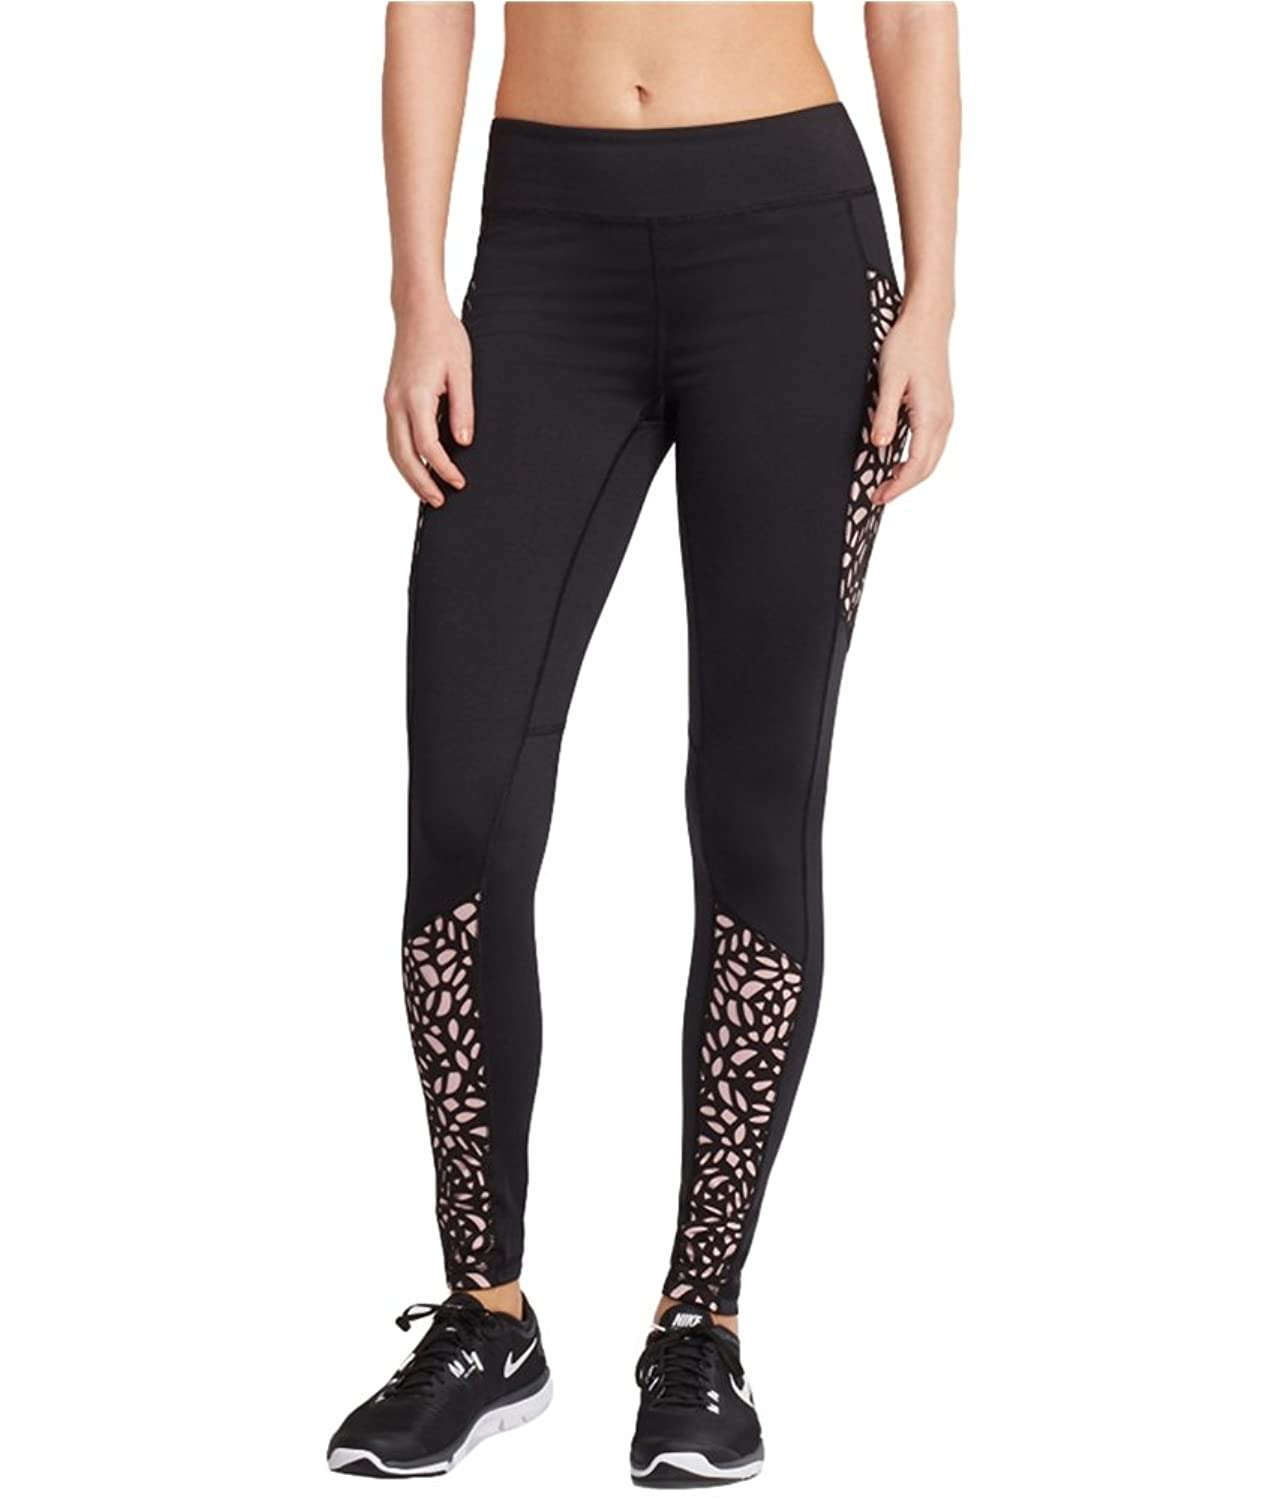 Aeropostale Womens Active Laser Cut Casual Leggings